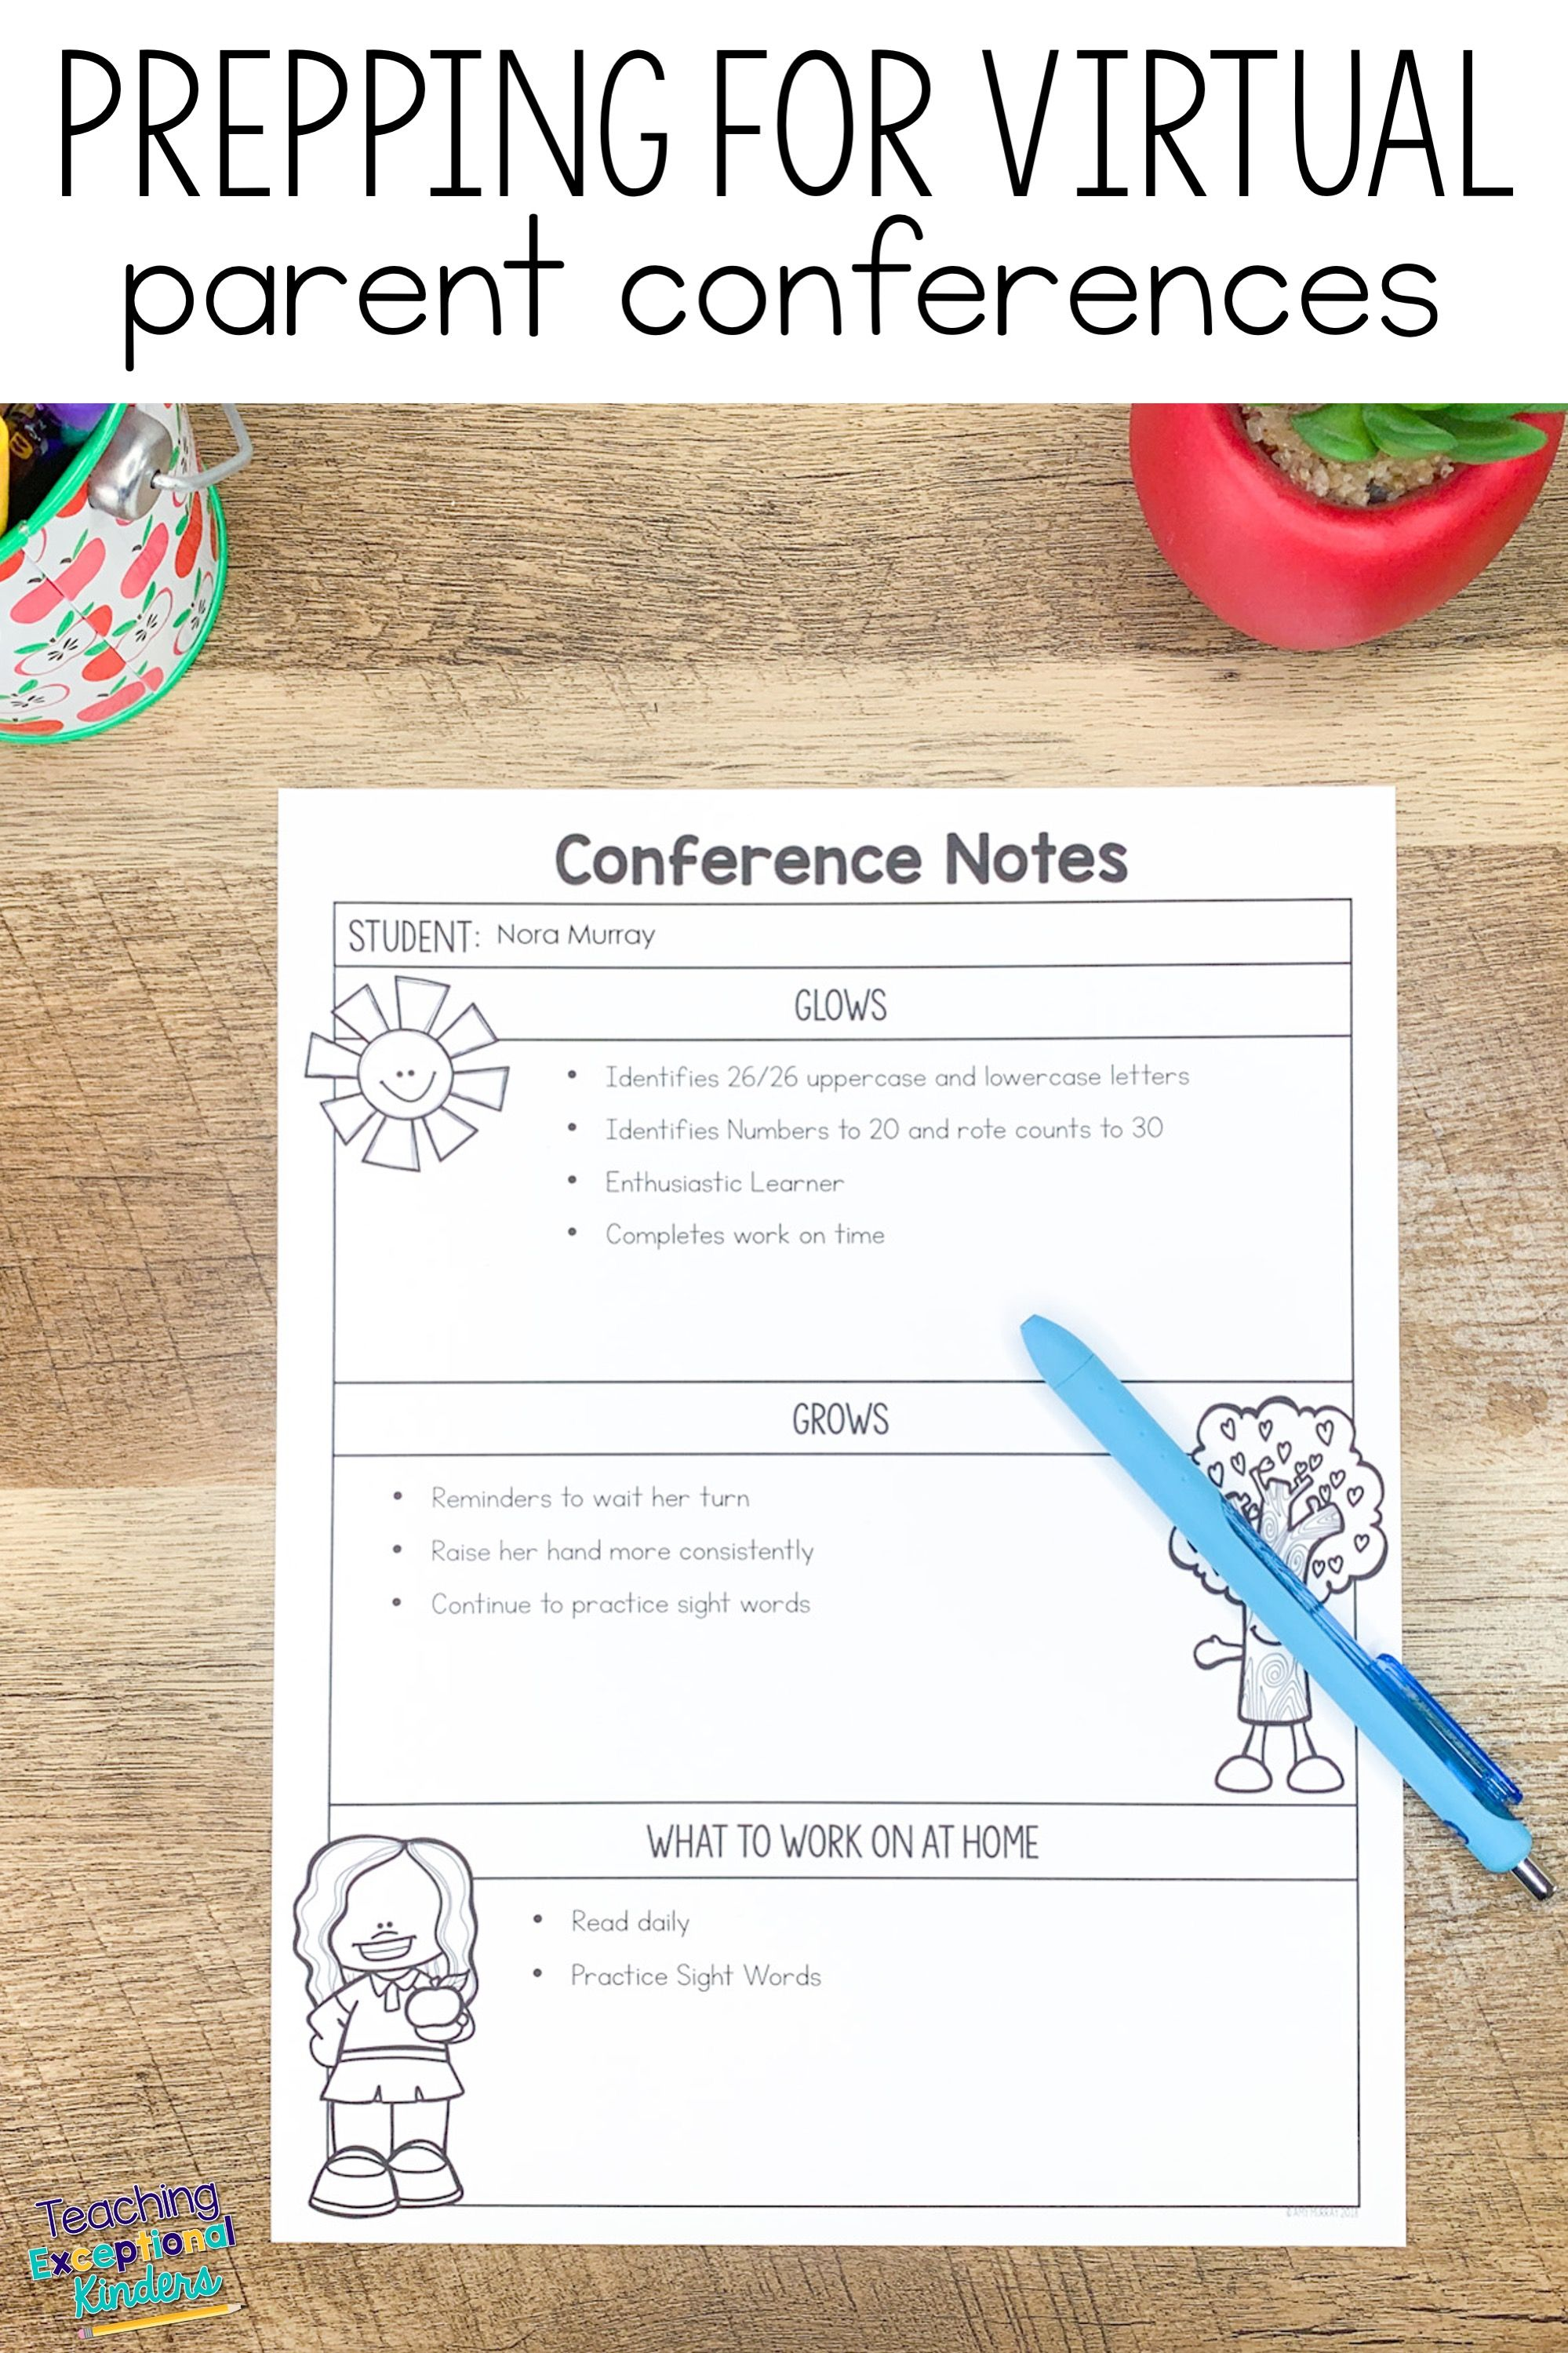 How To Use Editable Conference Forms For Virtual Parent Teacher Conferences Parent Teacher Conference Forms Parent Teacher Conferences Parents As Teachers Pta meeting sign in sheet